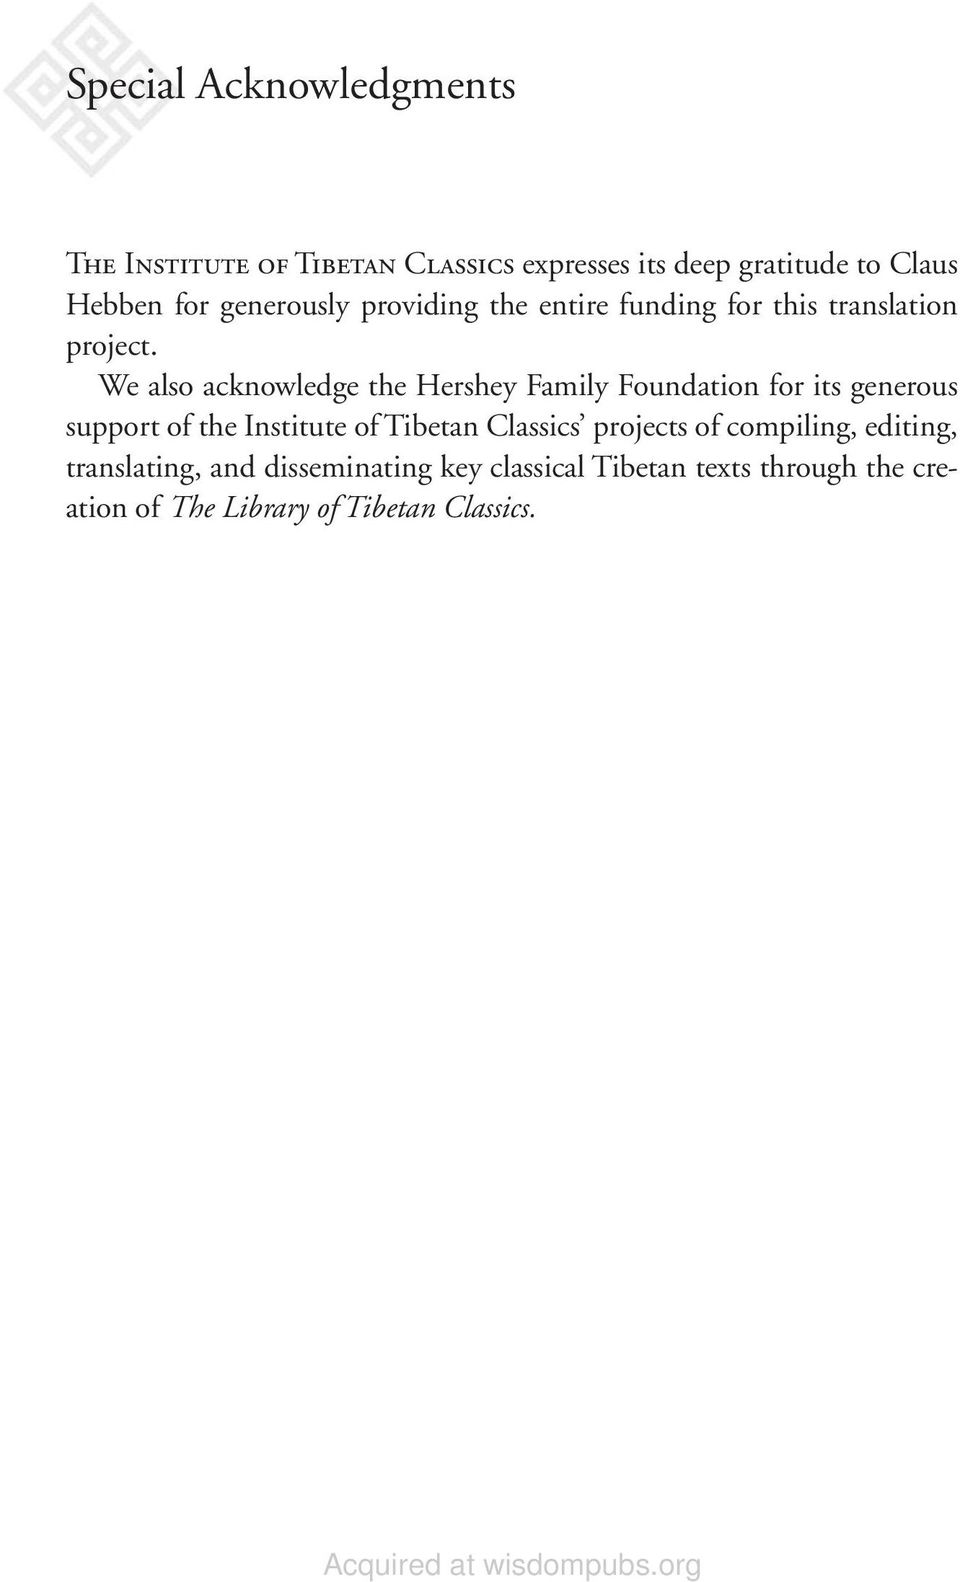 We also acknowledge the Hershey Family Foundation for its generous support of the Institute of Tibetan